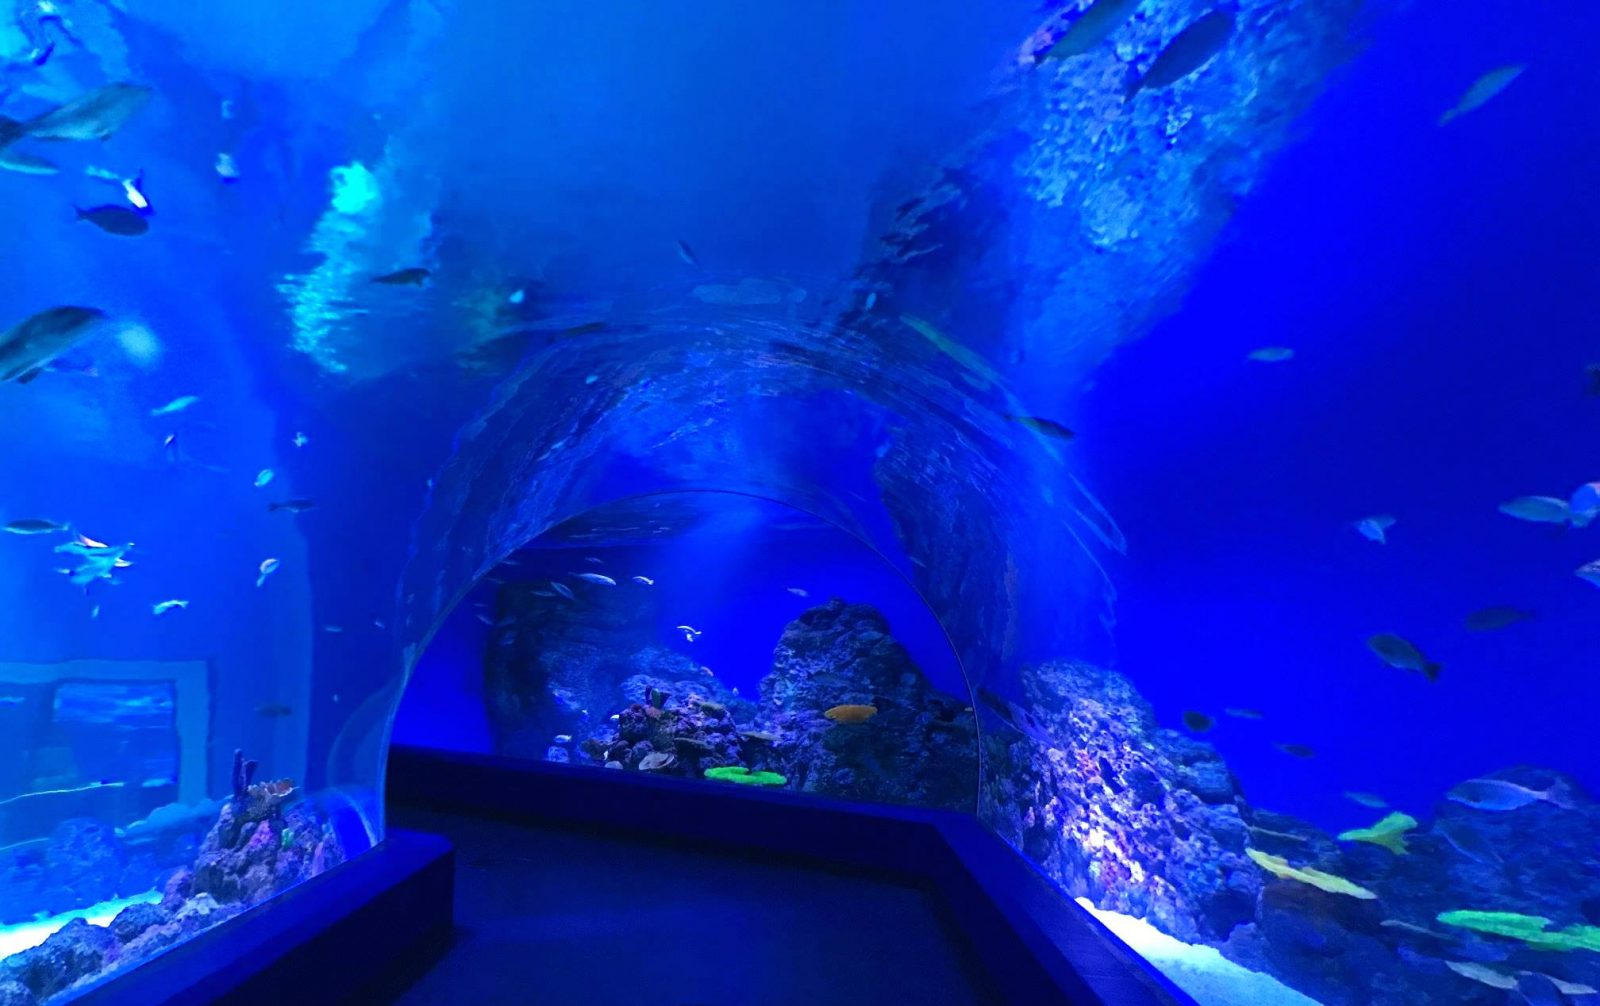 Public Aquarium LED-belysning